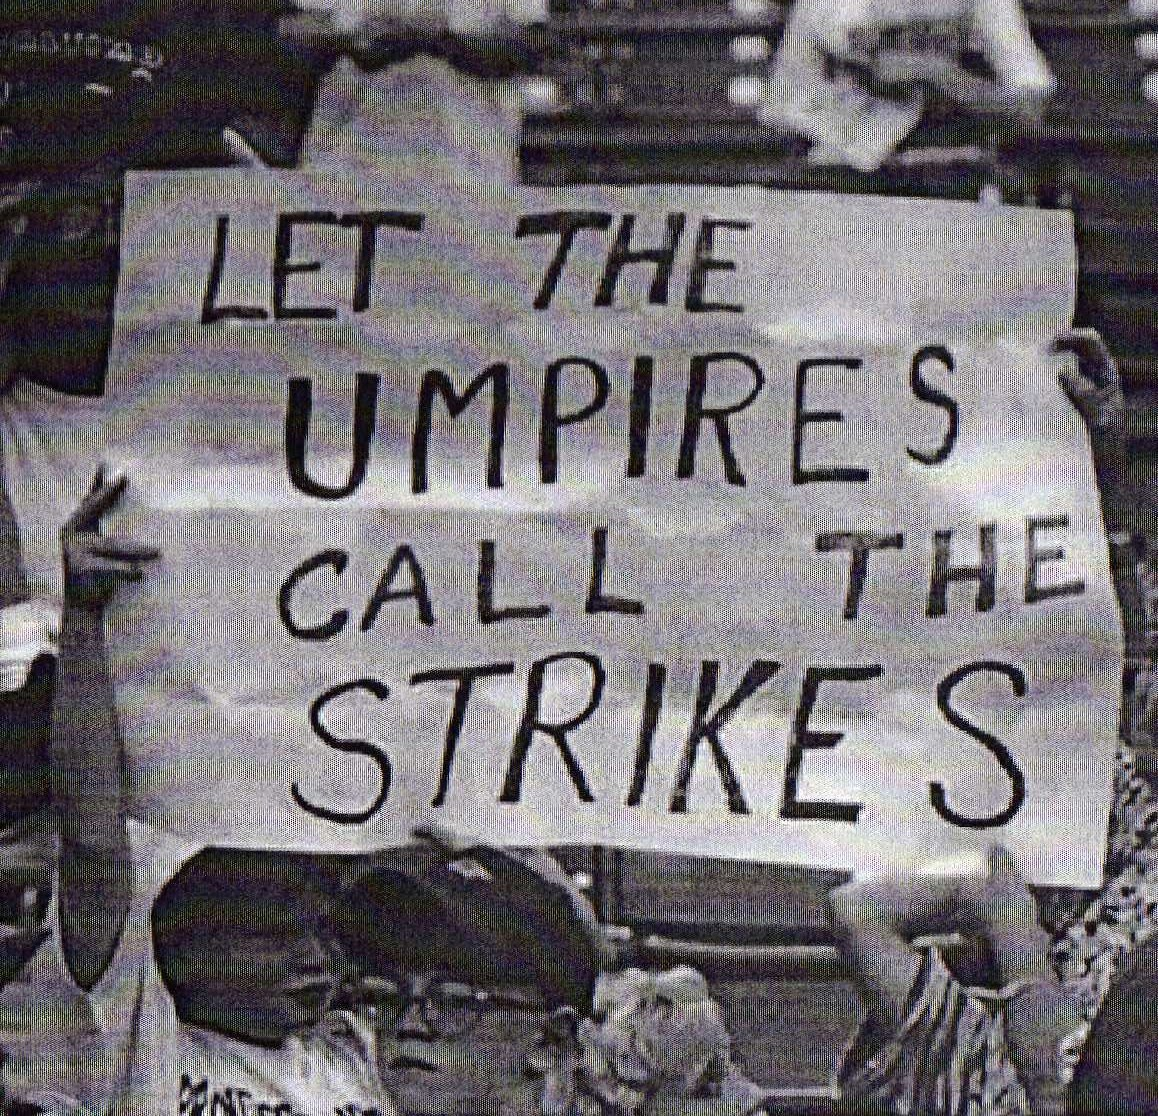 1994 baseball strike Ballplayers went on strike on august 12, 1994 they didn't come back to work until april 2, 1995 the work-stoppage cost nearly 950 games and, more importantly, led to the cancellation of the .